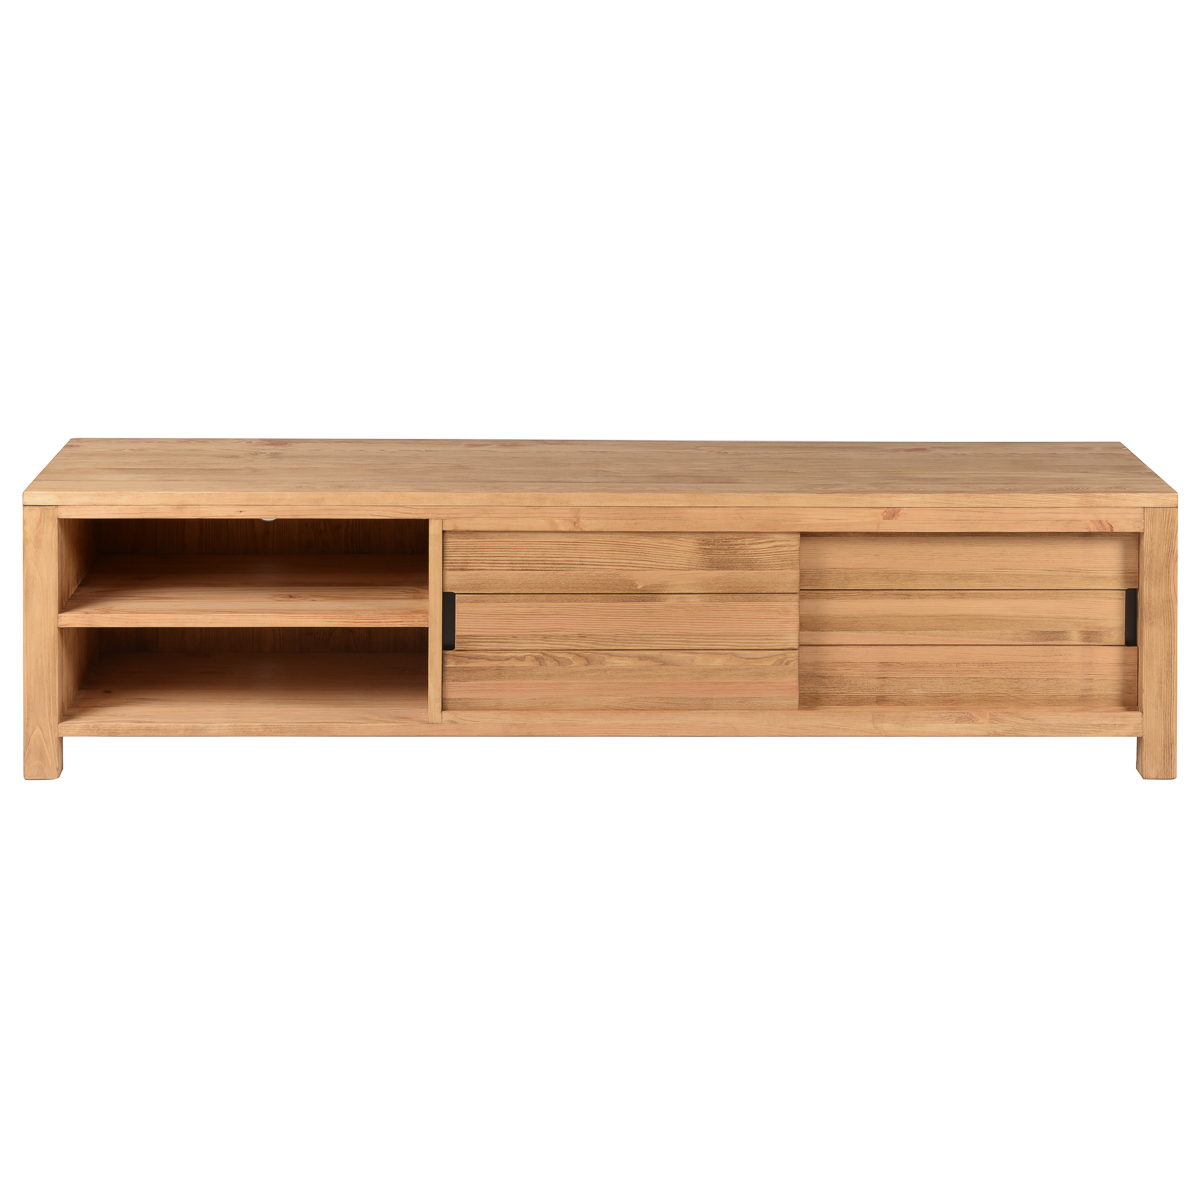 Meuble TV 160 cm pin massif 2 niches 2 portes coulissantes gamme